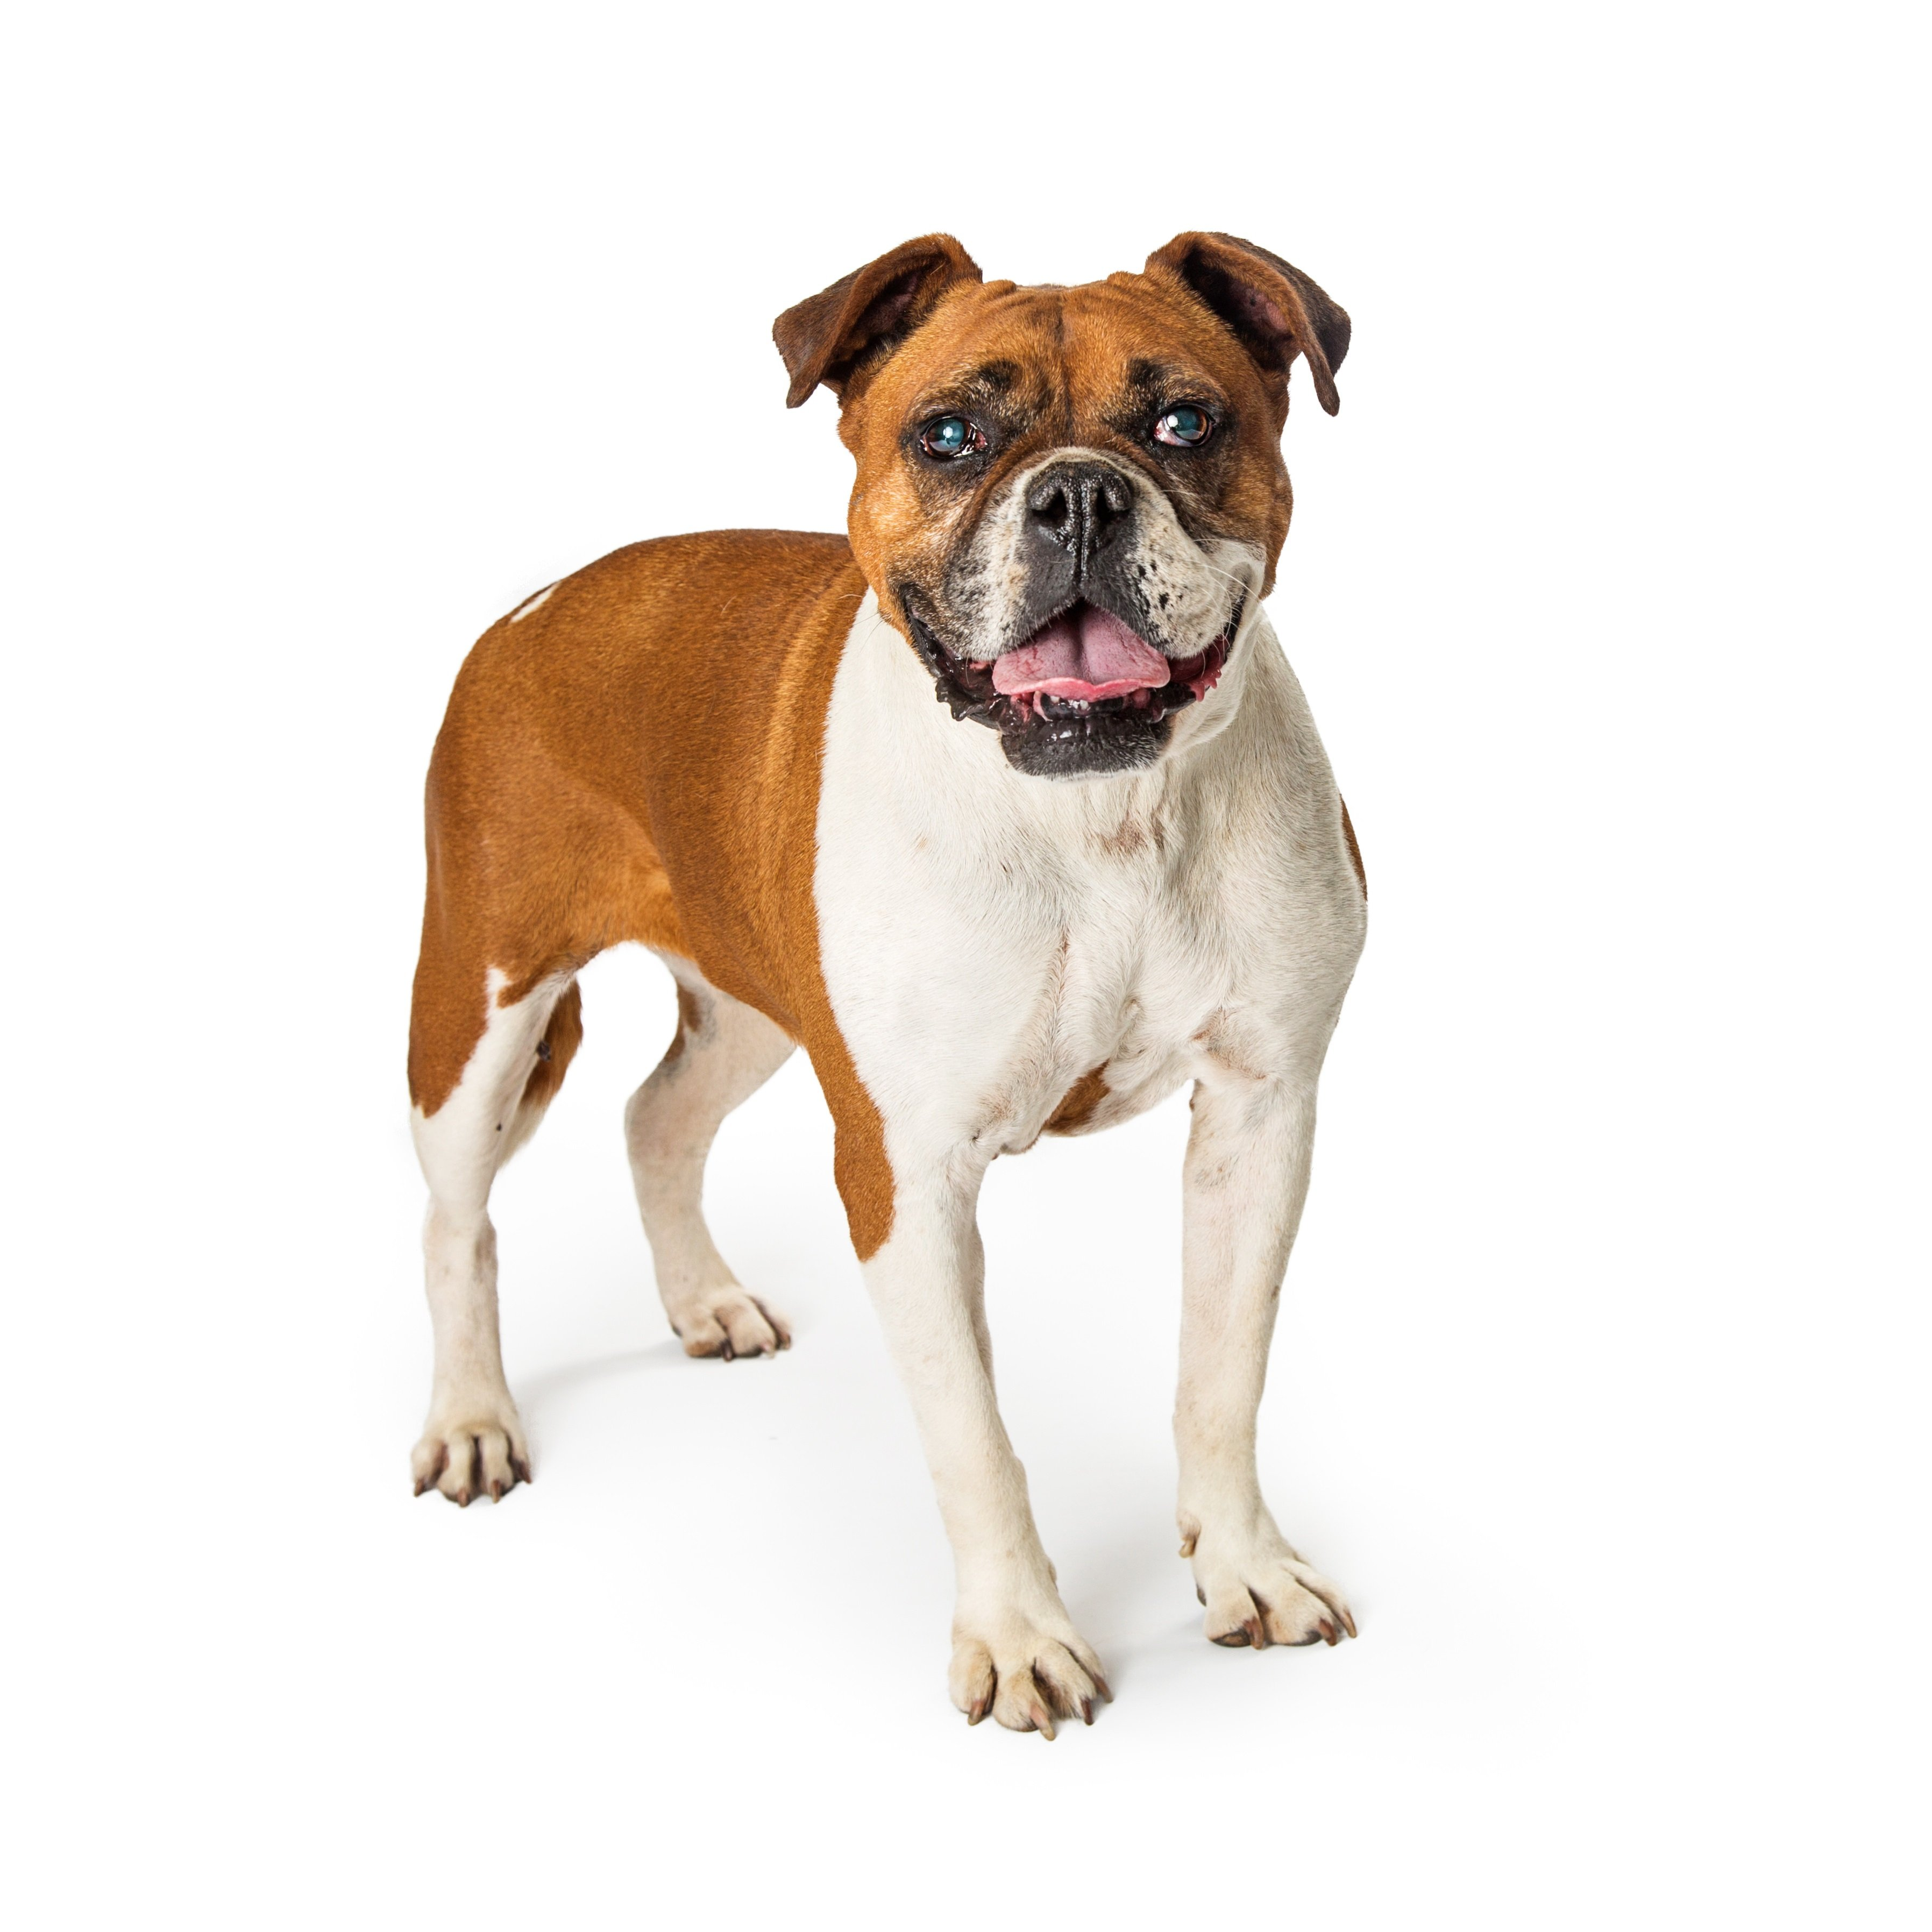 Valley Bulldog Mixed Dog Breed Pictures